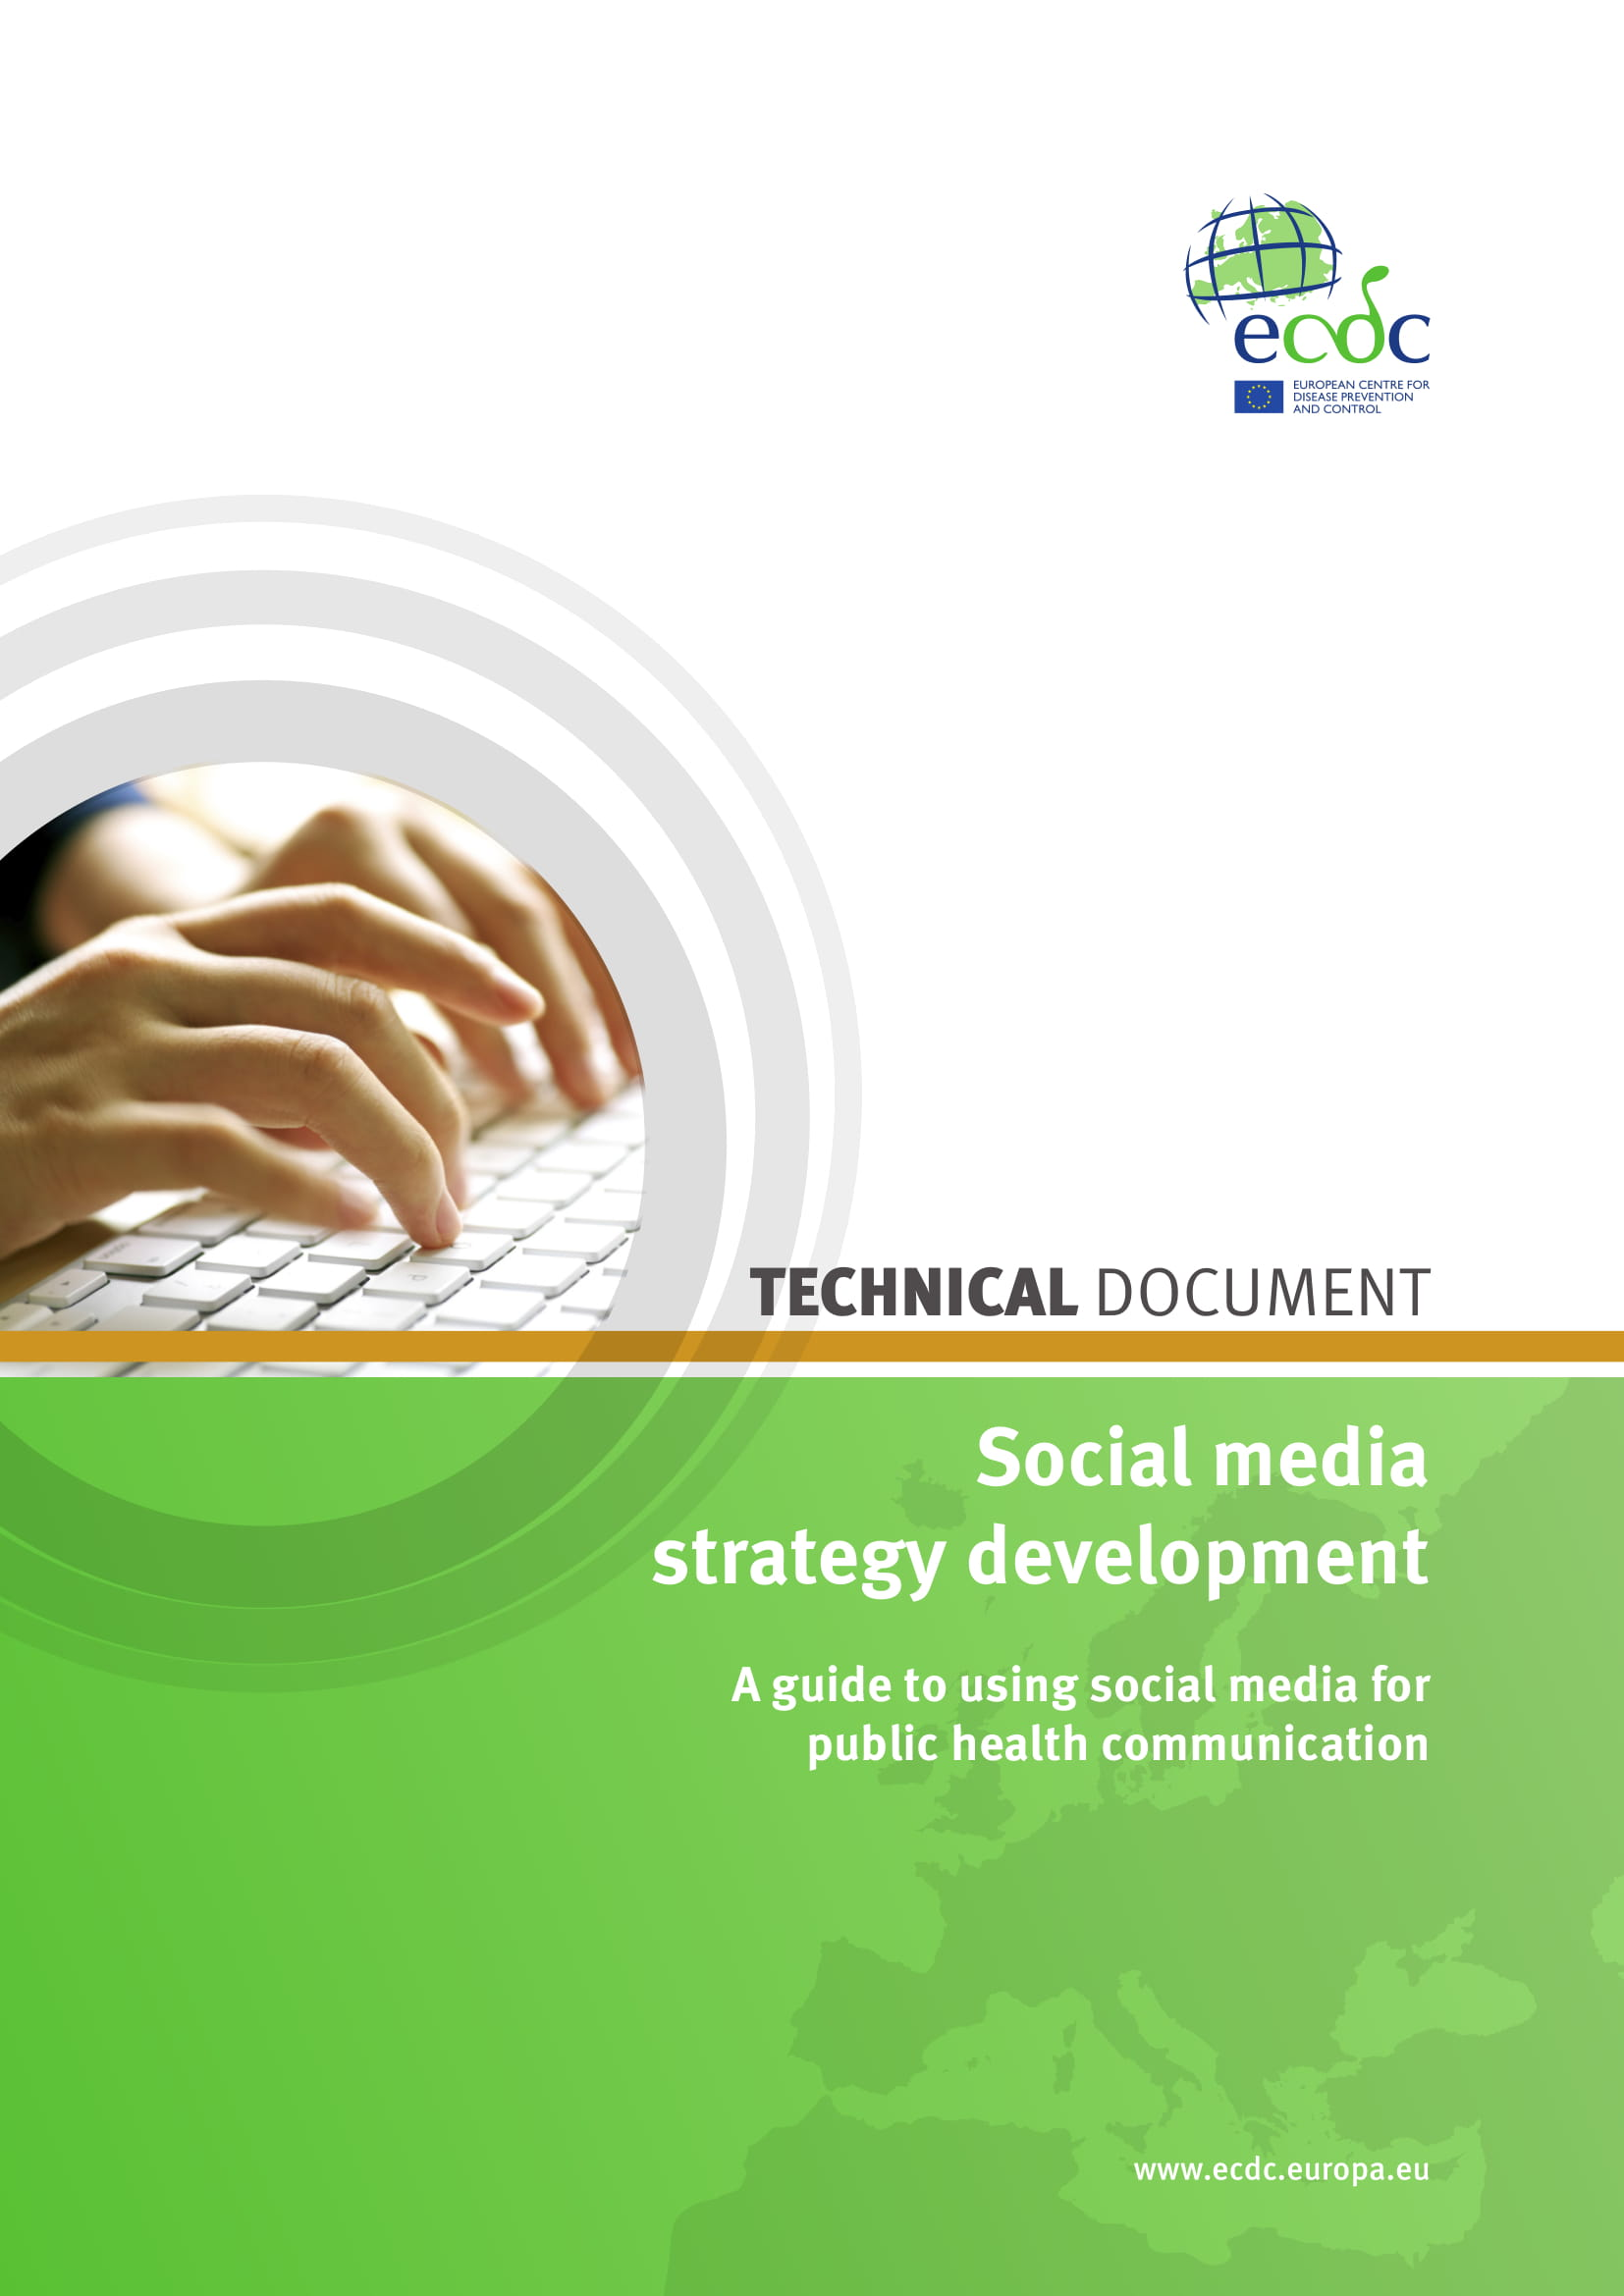 business technical planning document social media strategy development example 01